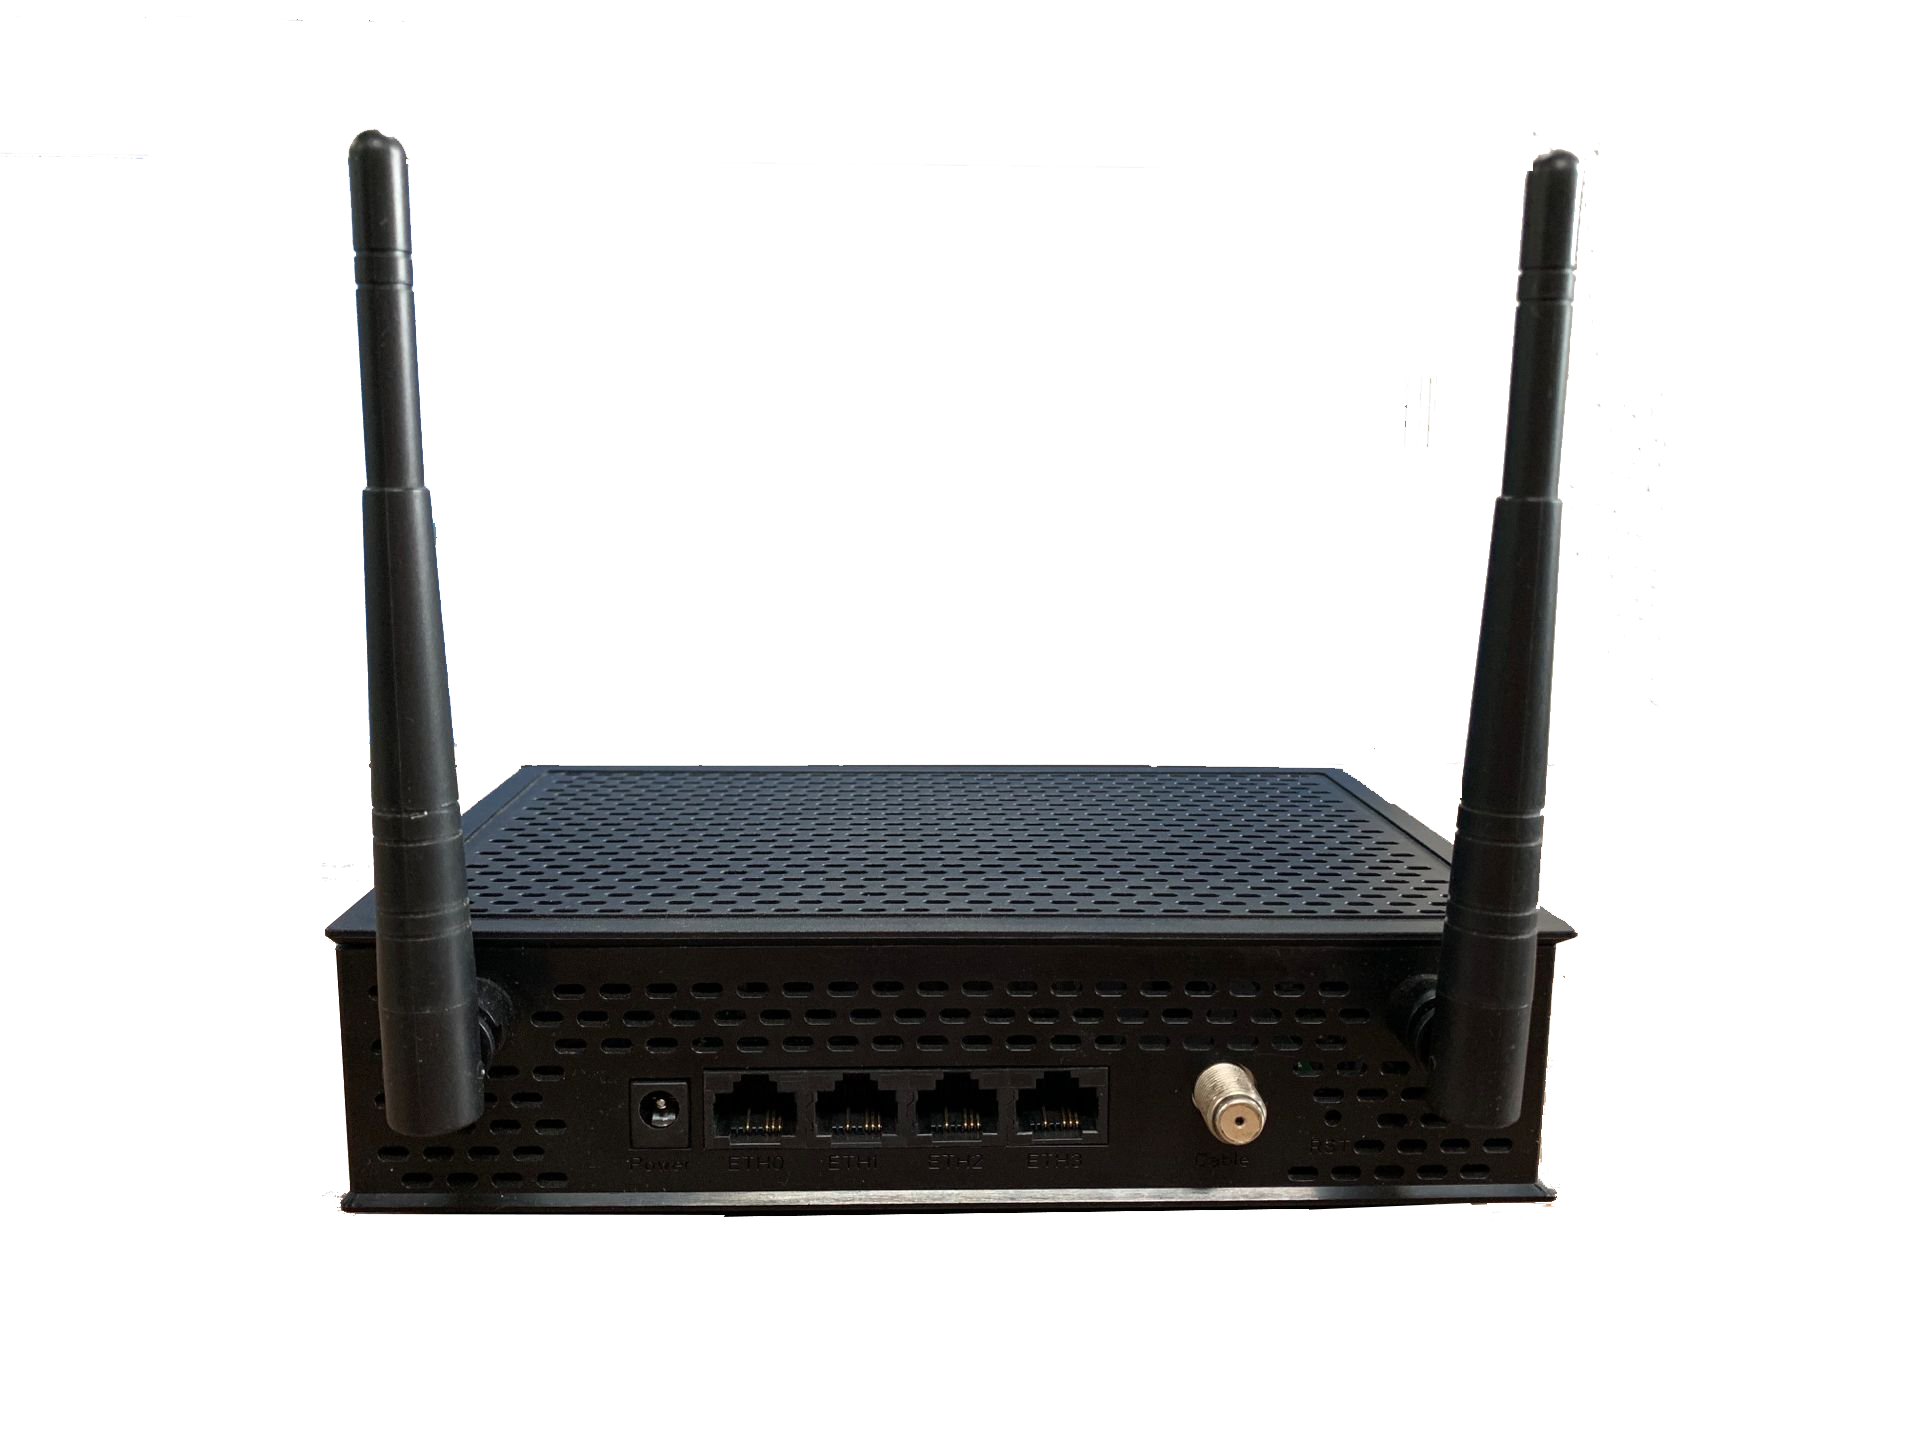 BL-CM314/314s DOCSIS3.0 Cable Modem with WIFI